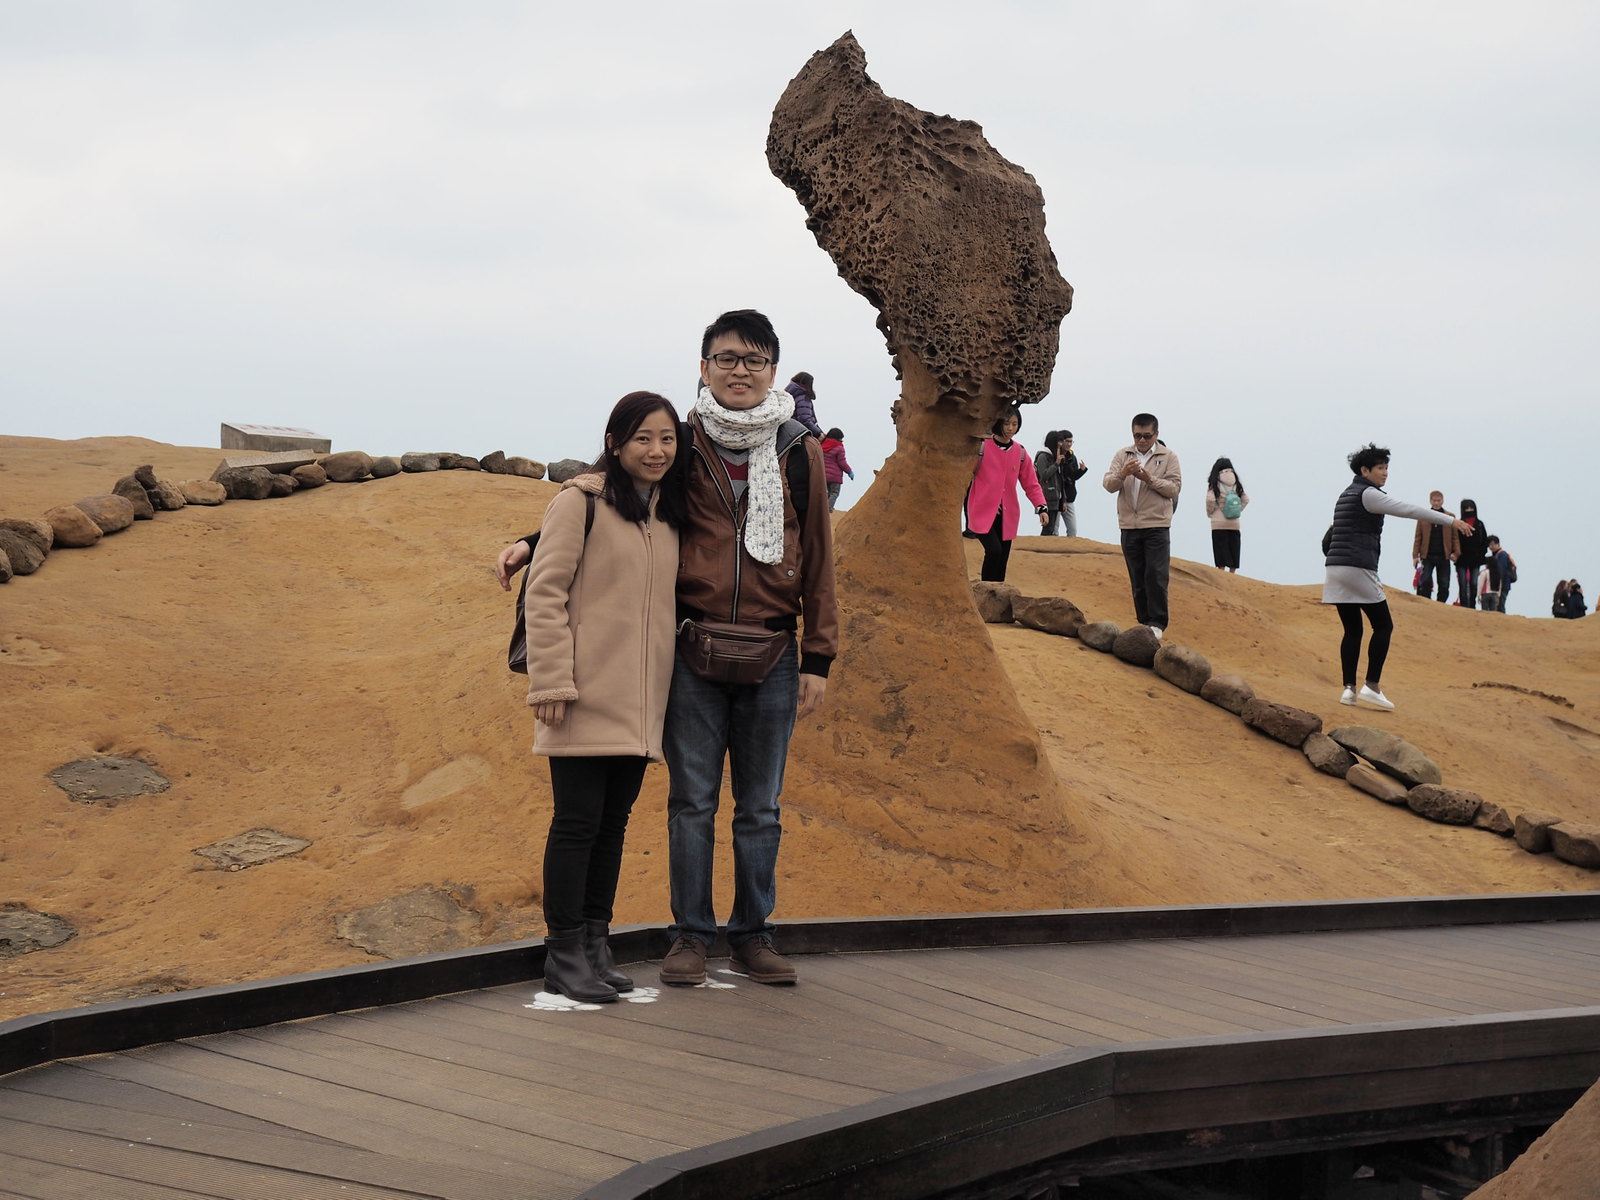 We took a photo with the popular Queen's Head at Yehliu Geopark (野柳地質公園)